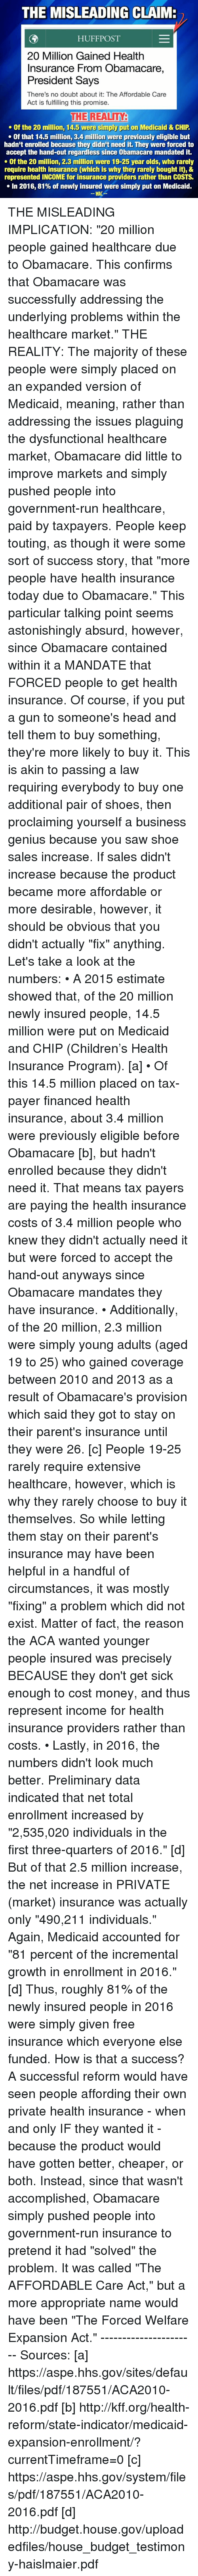 """Dank, Absurdism, and 🤖: THE MISLEADING CLAIMR  HUFF POST  20 Million Gained Health  Insurance From Obamacare,  President Says  There's no doubt about it: The Affordable Care  Act is fulfilling this promise.  THE REALITY  Of the 20 million, 14.5 were simply put on Medicaid & CHIP  Of that 14.5 million, 3.4 million were previously eligible but  hadn't enrolled because they didn't need it. They were forced to  accept the hand-out regardless since Obamacare mandated it.  Of the 20 million, 2.3 million were 19-25 year olds, who rarely  require health insurance (which is why they rarely bought it), &  represented INCOME for insurance providers rather than COSTS.  In 2016, 81% of newly insured were simply put on Medicaid.  WAC THE MISLEADING IMPLICATION: """"20 million people gained healthcare due to Obamacare. This confirms that Obamacare was successfully addressing the underlying problems within the healthcare market.""""  THE REALITY: The majority of these people were simply placed on an expanded version of Medicaid, meaning, rather than addressing the issues plaguing the dysfunctional healthcare market, Obamacare did little to improve markets and simply pushed people into government-run healthcare, paid by taxpayers.  People keep touting, as though it were some sort of success story, that """"more people have health insurance today due to Obamacare."""" This particular talking point seems astonishingly absurd, however, since Obamacare contained within it a MANDATE that FORCED people to get health insurance. Of course, if you put a gun to someone's head and tell them to buy something, they're more likely to buy it. This is akin to passing a law requiring everybody to buy one additional pair of shoes, then proclaiming yourself a business genius because you saw shoe sales increase. If sales didn't increase because the product became more affordable or more desirable, however, it should be obvious that you didn't actually """"fix"""" anything.   Let's take a look at the numbers:  • A 2015 e"""